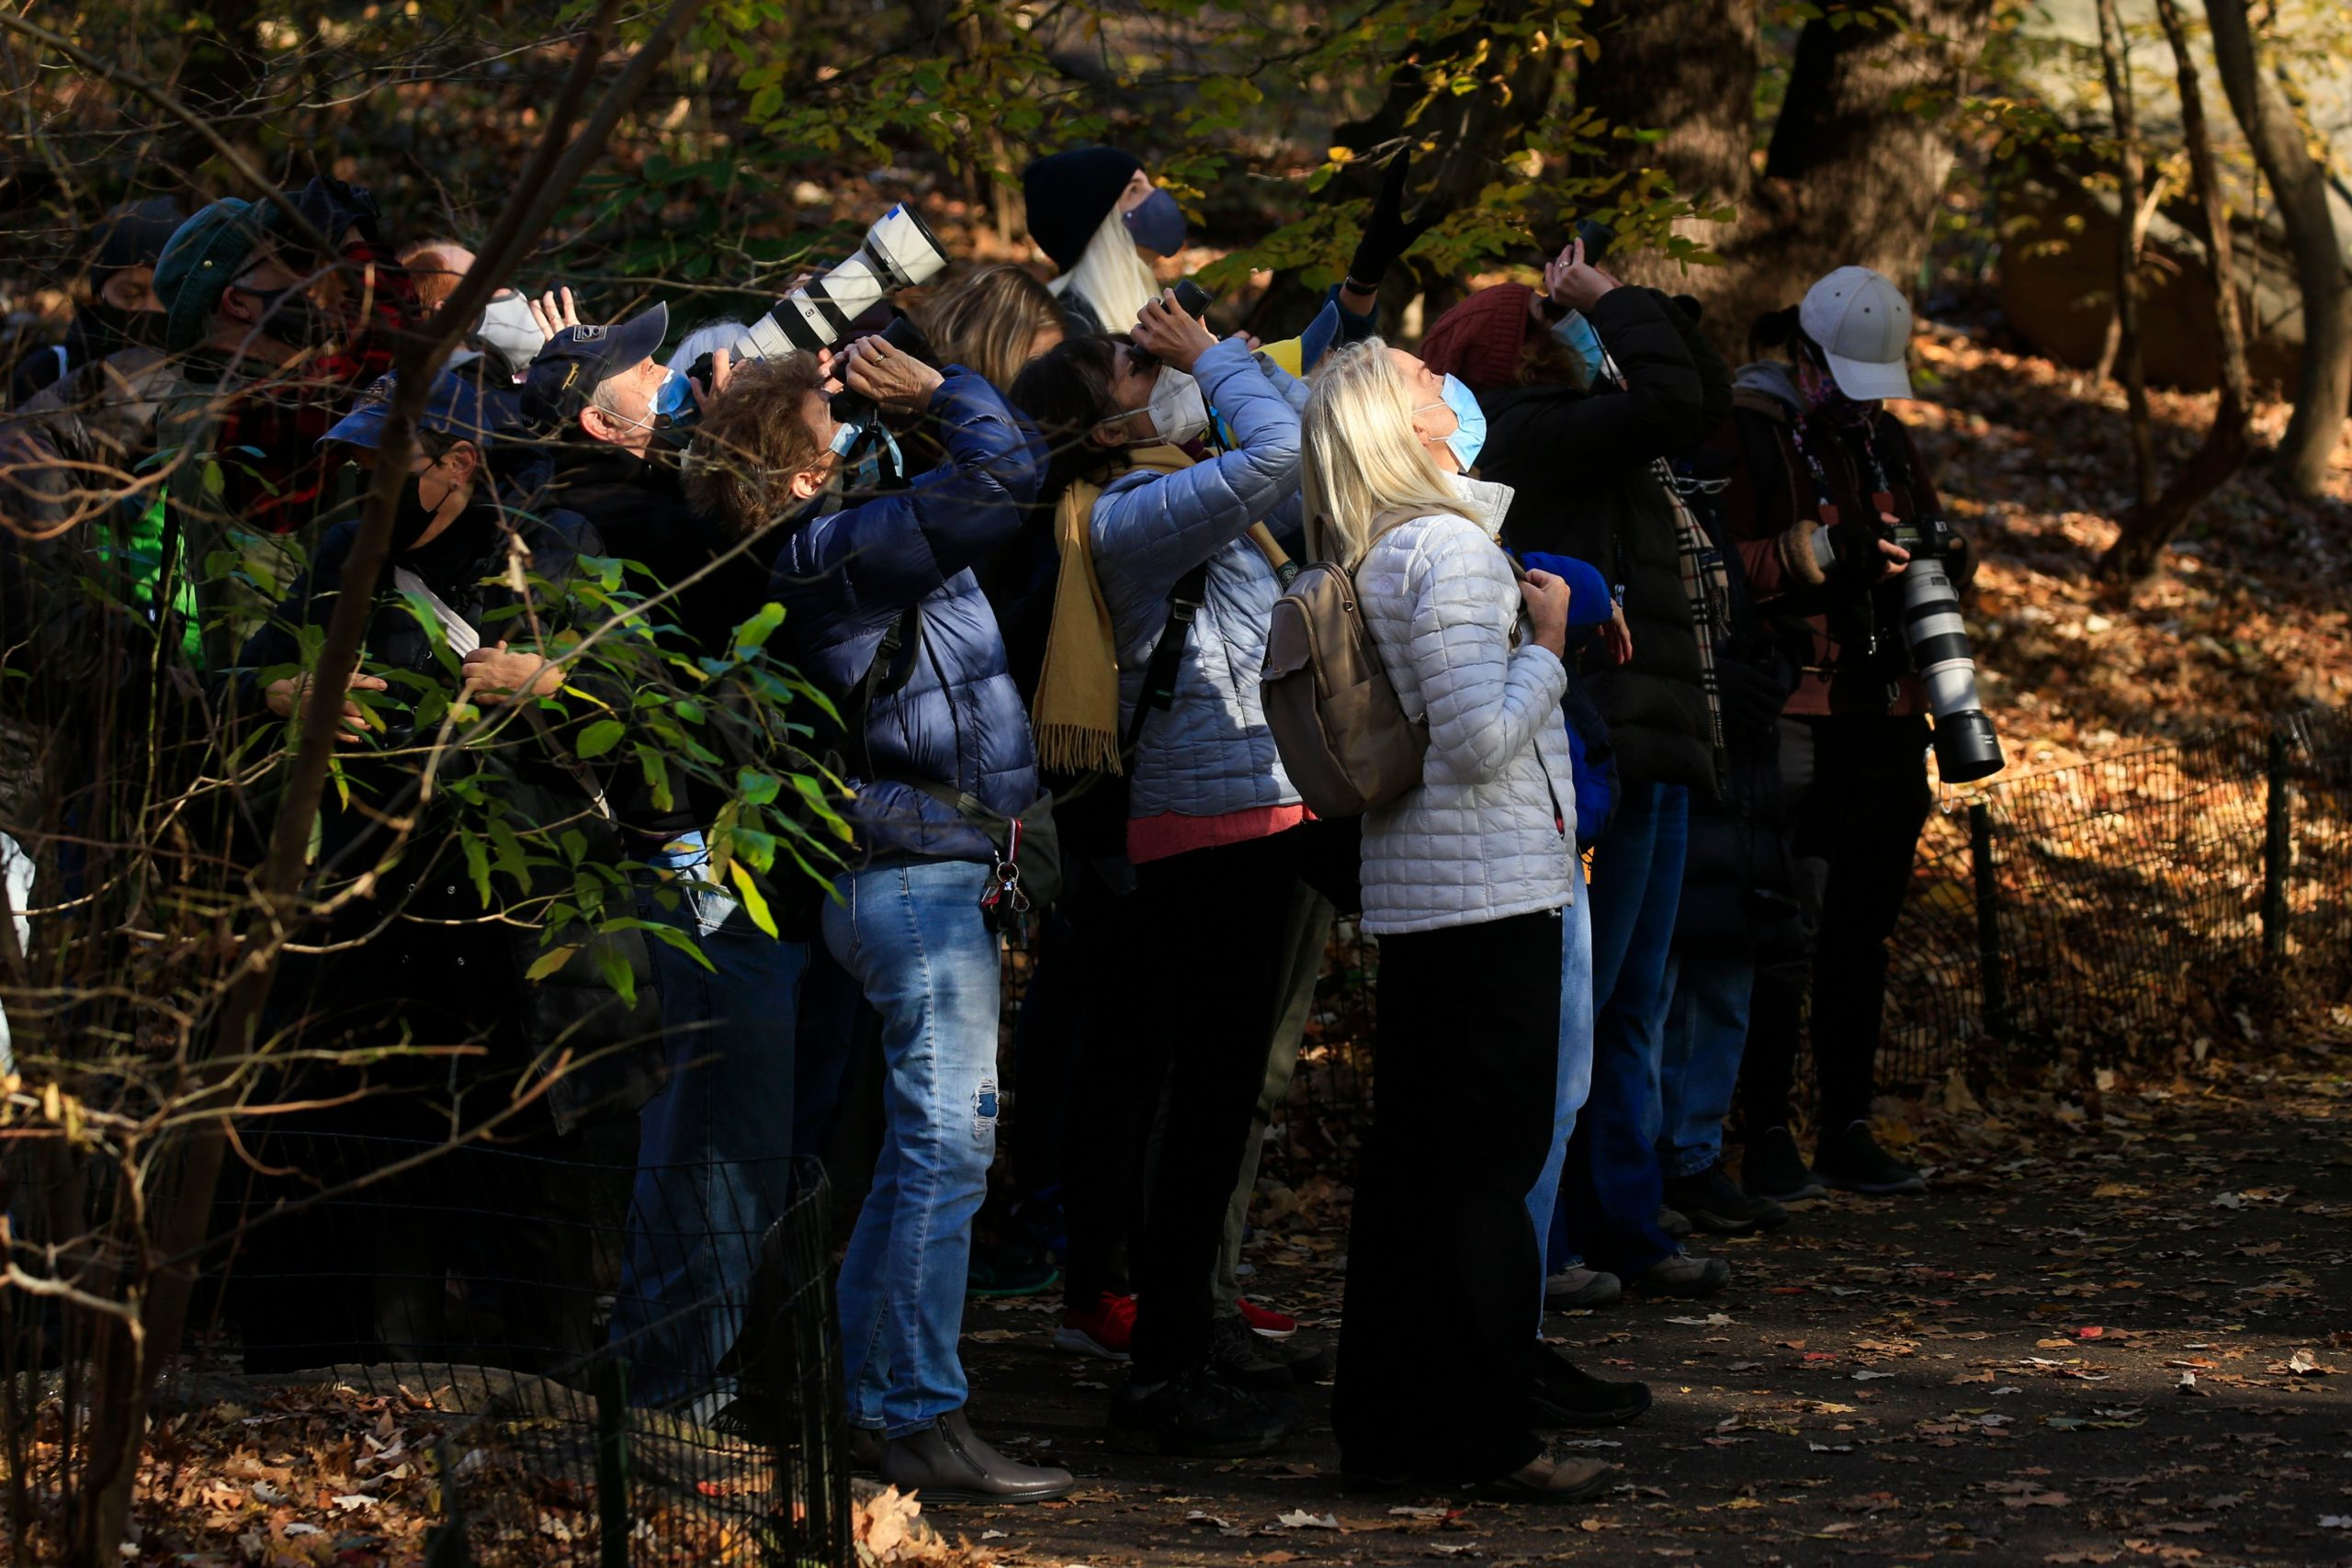 Bird watchers use binoculars and cameras to see a Great Horned Owl in Central Park, New York on Nov. 29. (Kena Betancur/AFP via Getty Images)